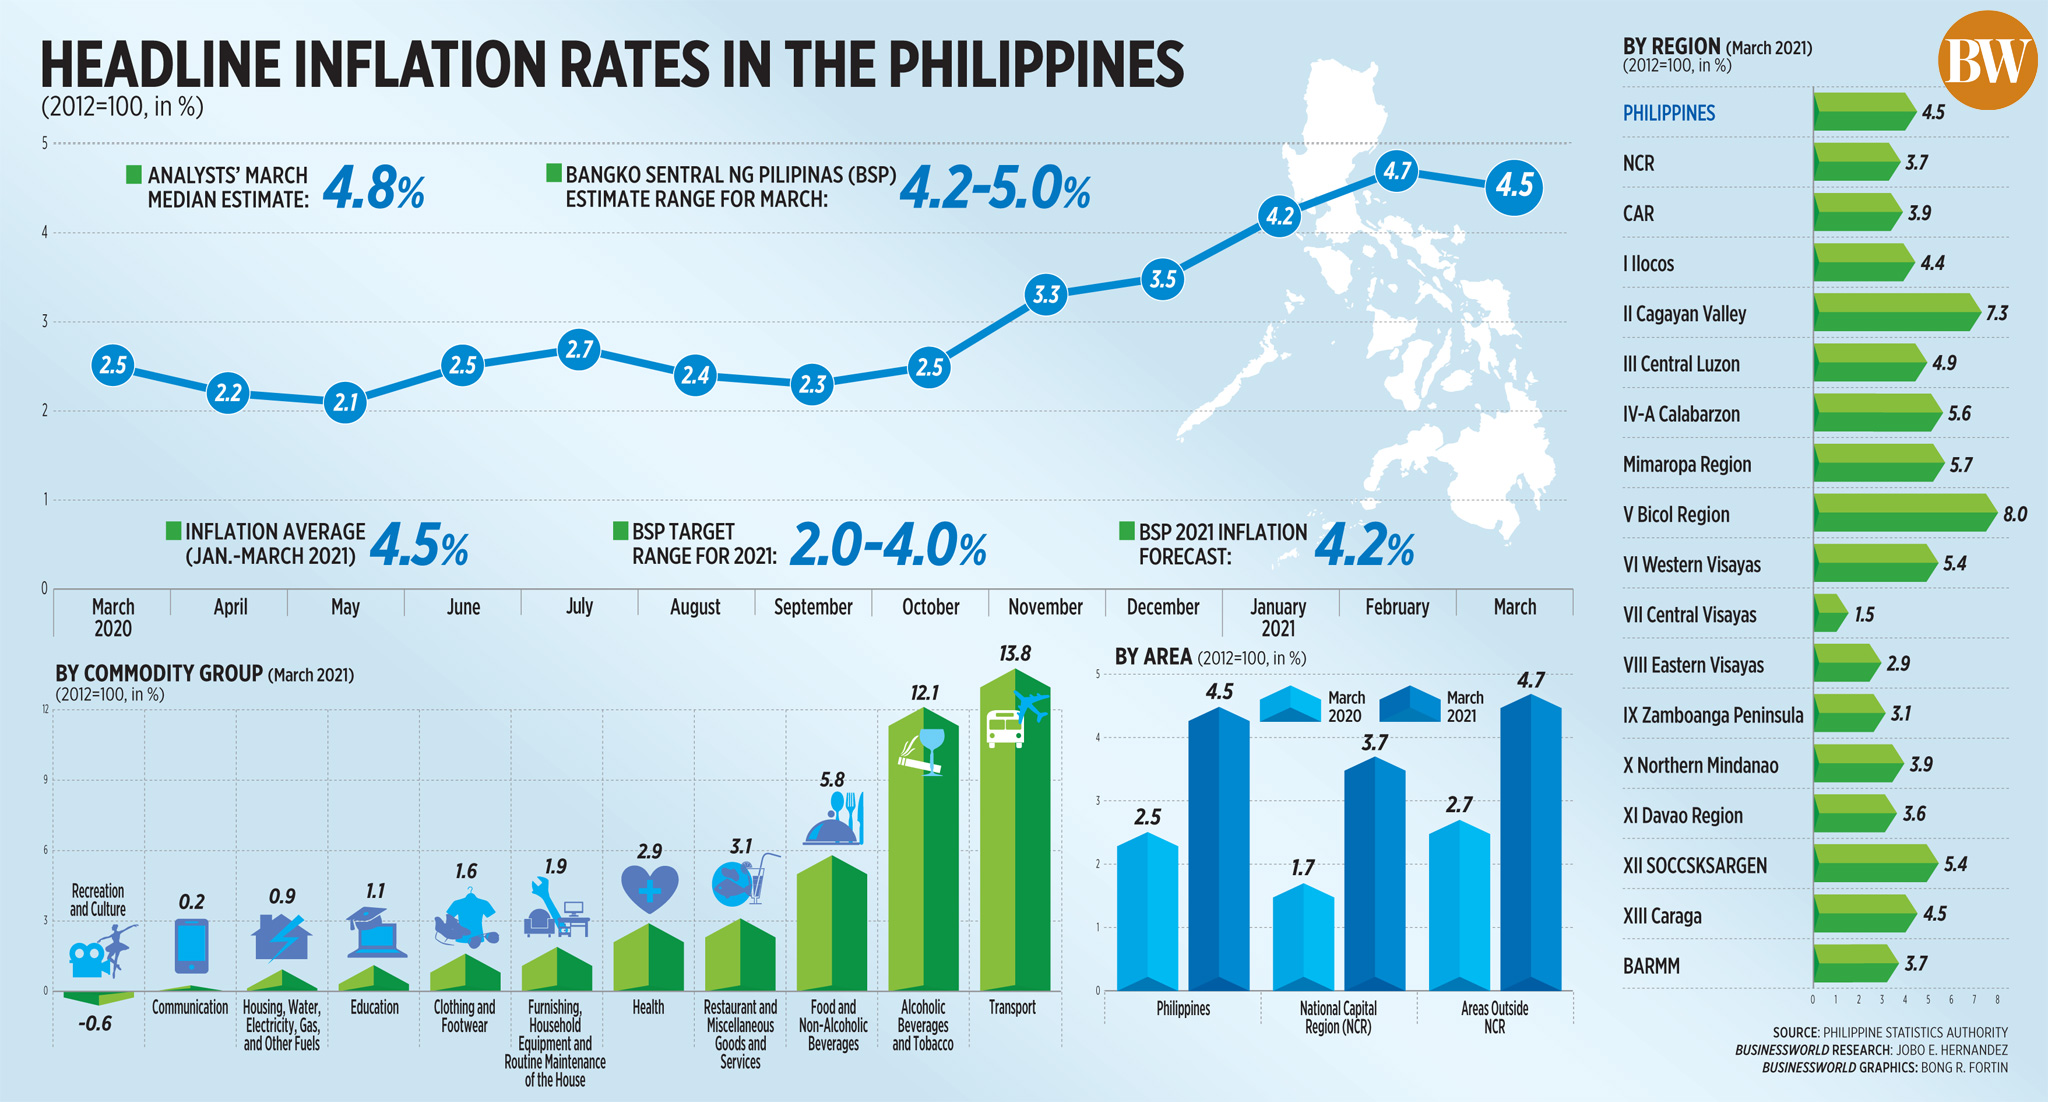 Headline inflation rates in the Philippines (March 2021)